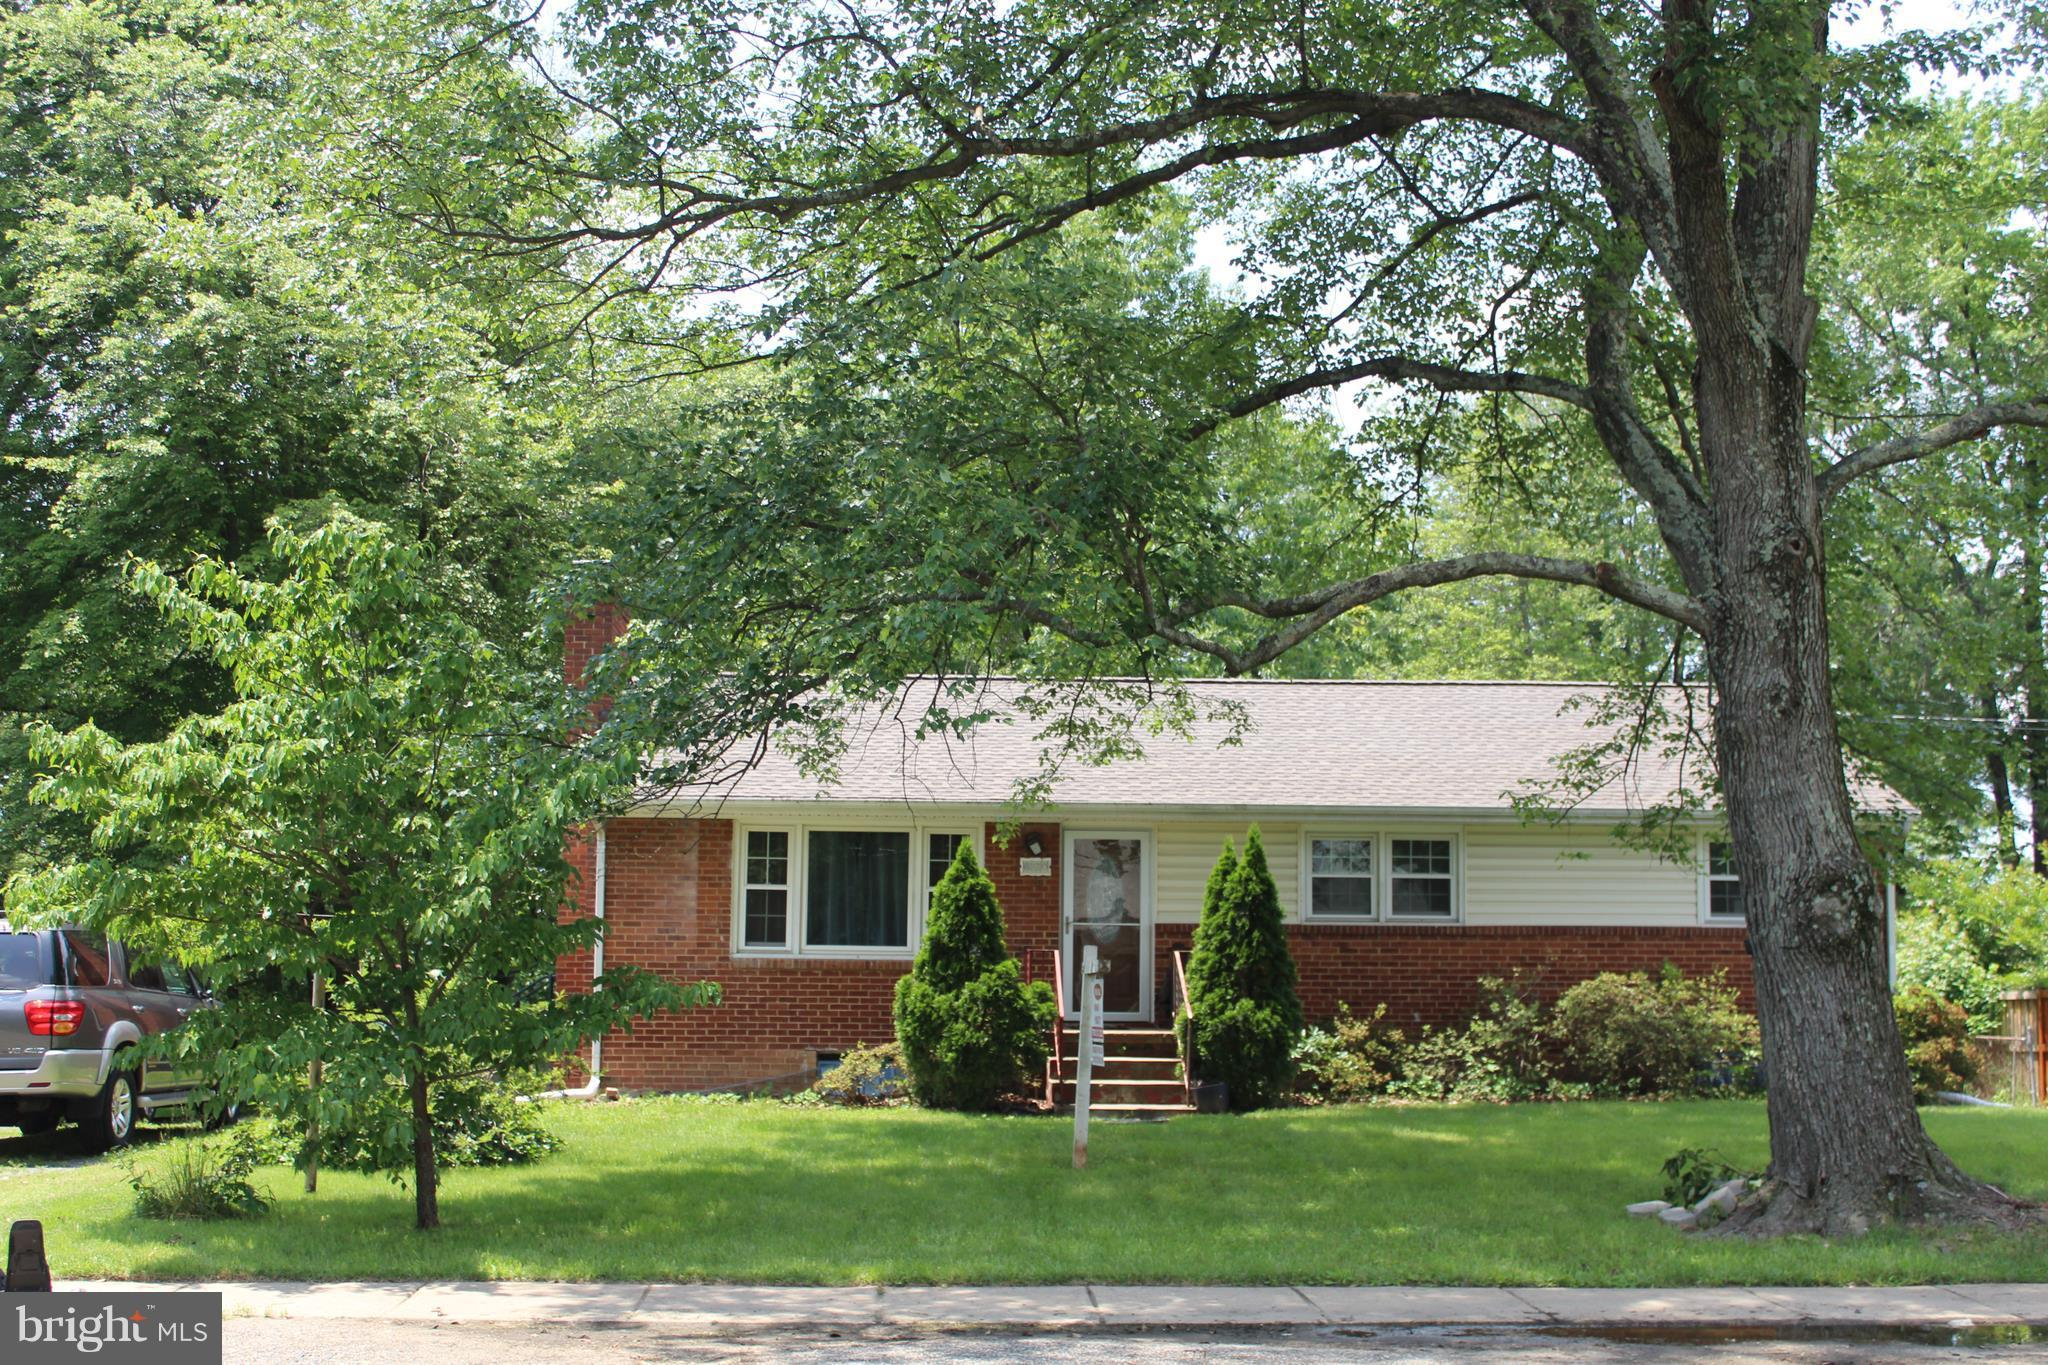 """PRICE REDUCED.Full Brick Rambler near everything in Alexandria.Upgraded Kitchen and Main level Bathrooms (2015). LL bath (2005). New Roof (3/2018) and New windows(2014).Spacious finished basement w/Fireplace. Big flat lot w/fire pit. Backs to Edison HS. 5 minutes to Kingstowne Subway Sation,10 min to Springfield mall, 18 min to Old Towne,25 min to Ft. Belvoir.Quick access to 395/495.""""AS IS"""""""